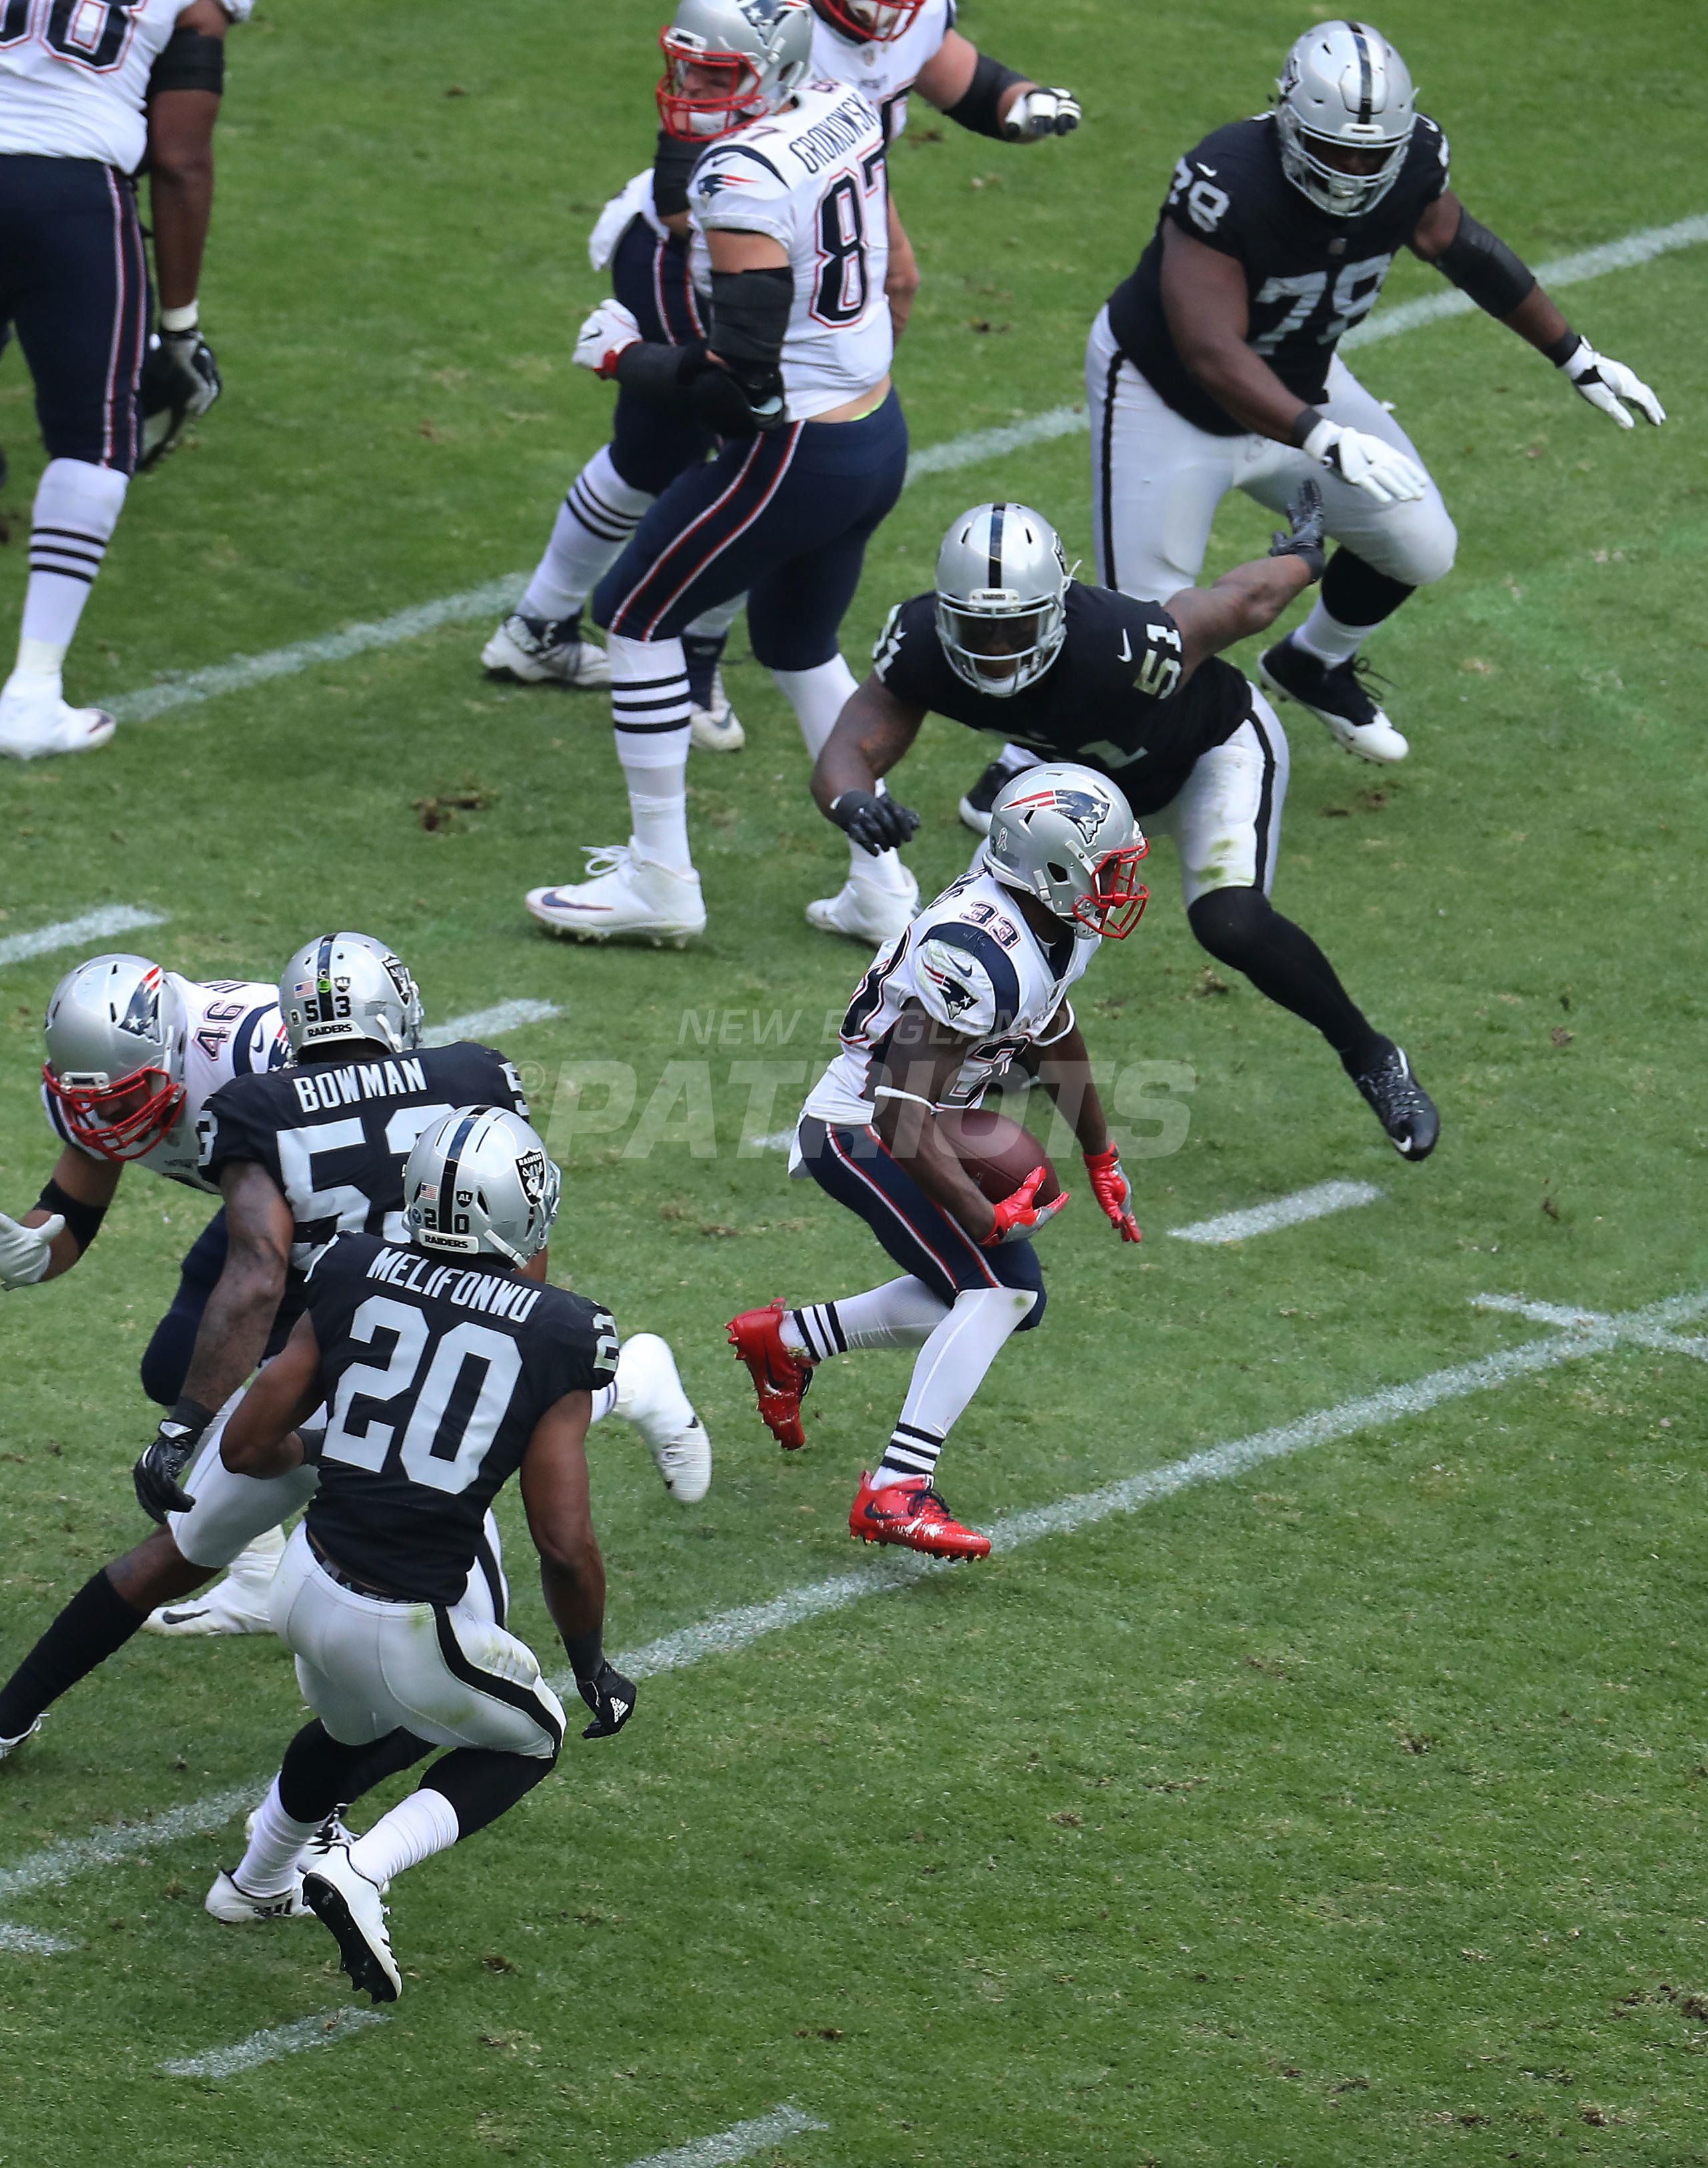 Silverman S Best Presented By Carmax Patriots Raiders 11 19 Raiders Patriots Oakland Raiders